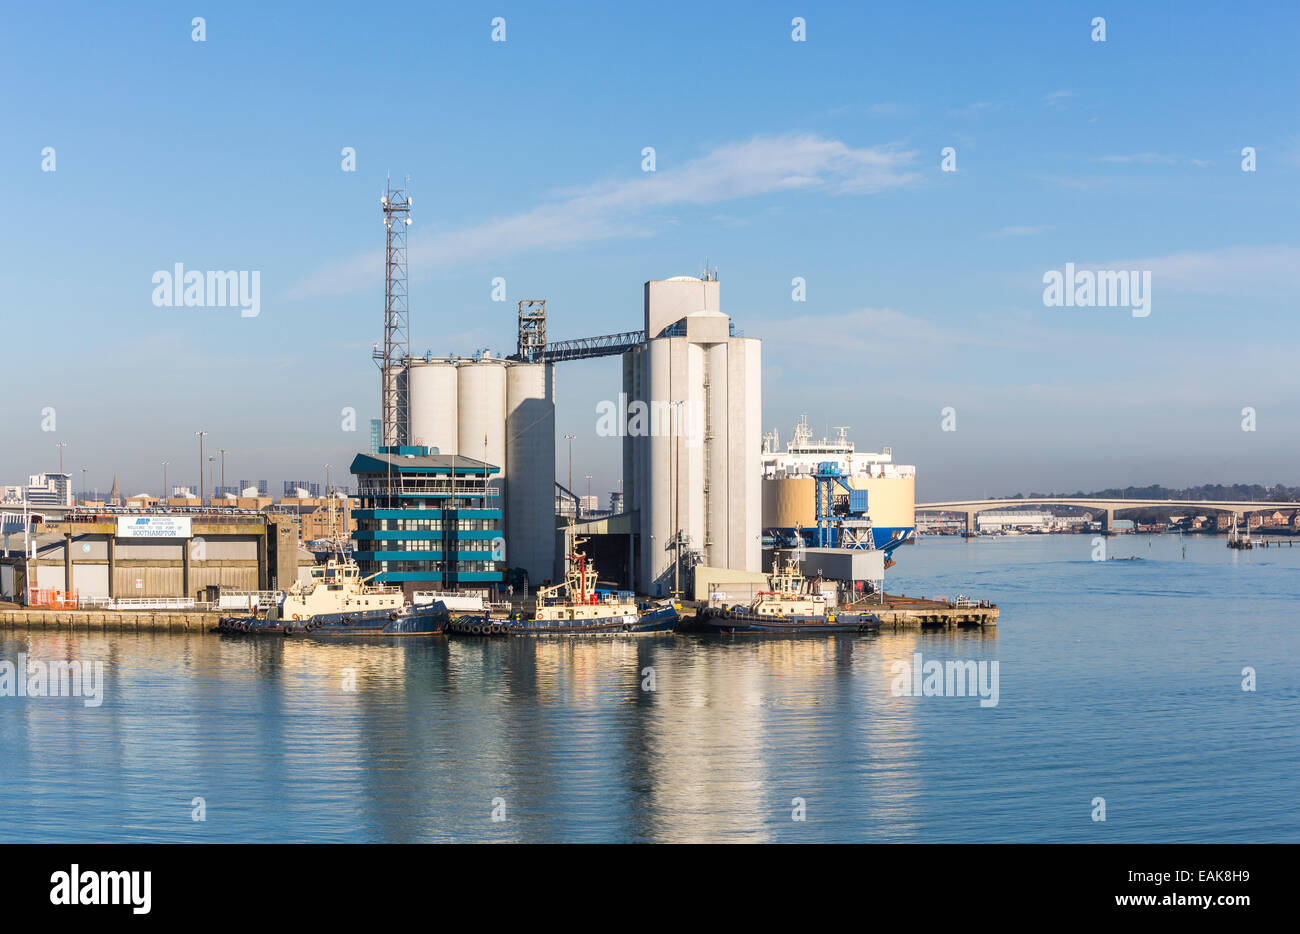 Tugs moored at the quayside, Southampton Docks, Port of Southampton, the Solent, Hampshire, Itchen Bridge in the - Stock Image